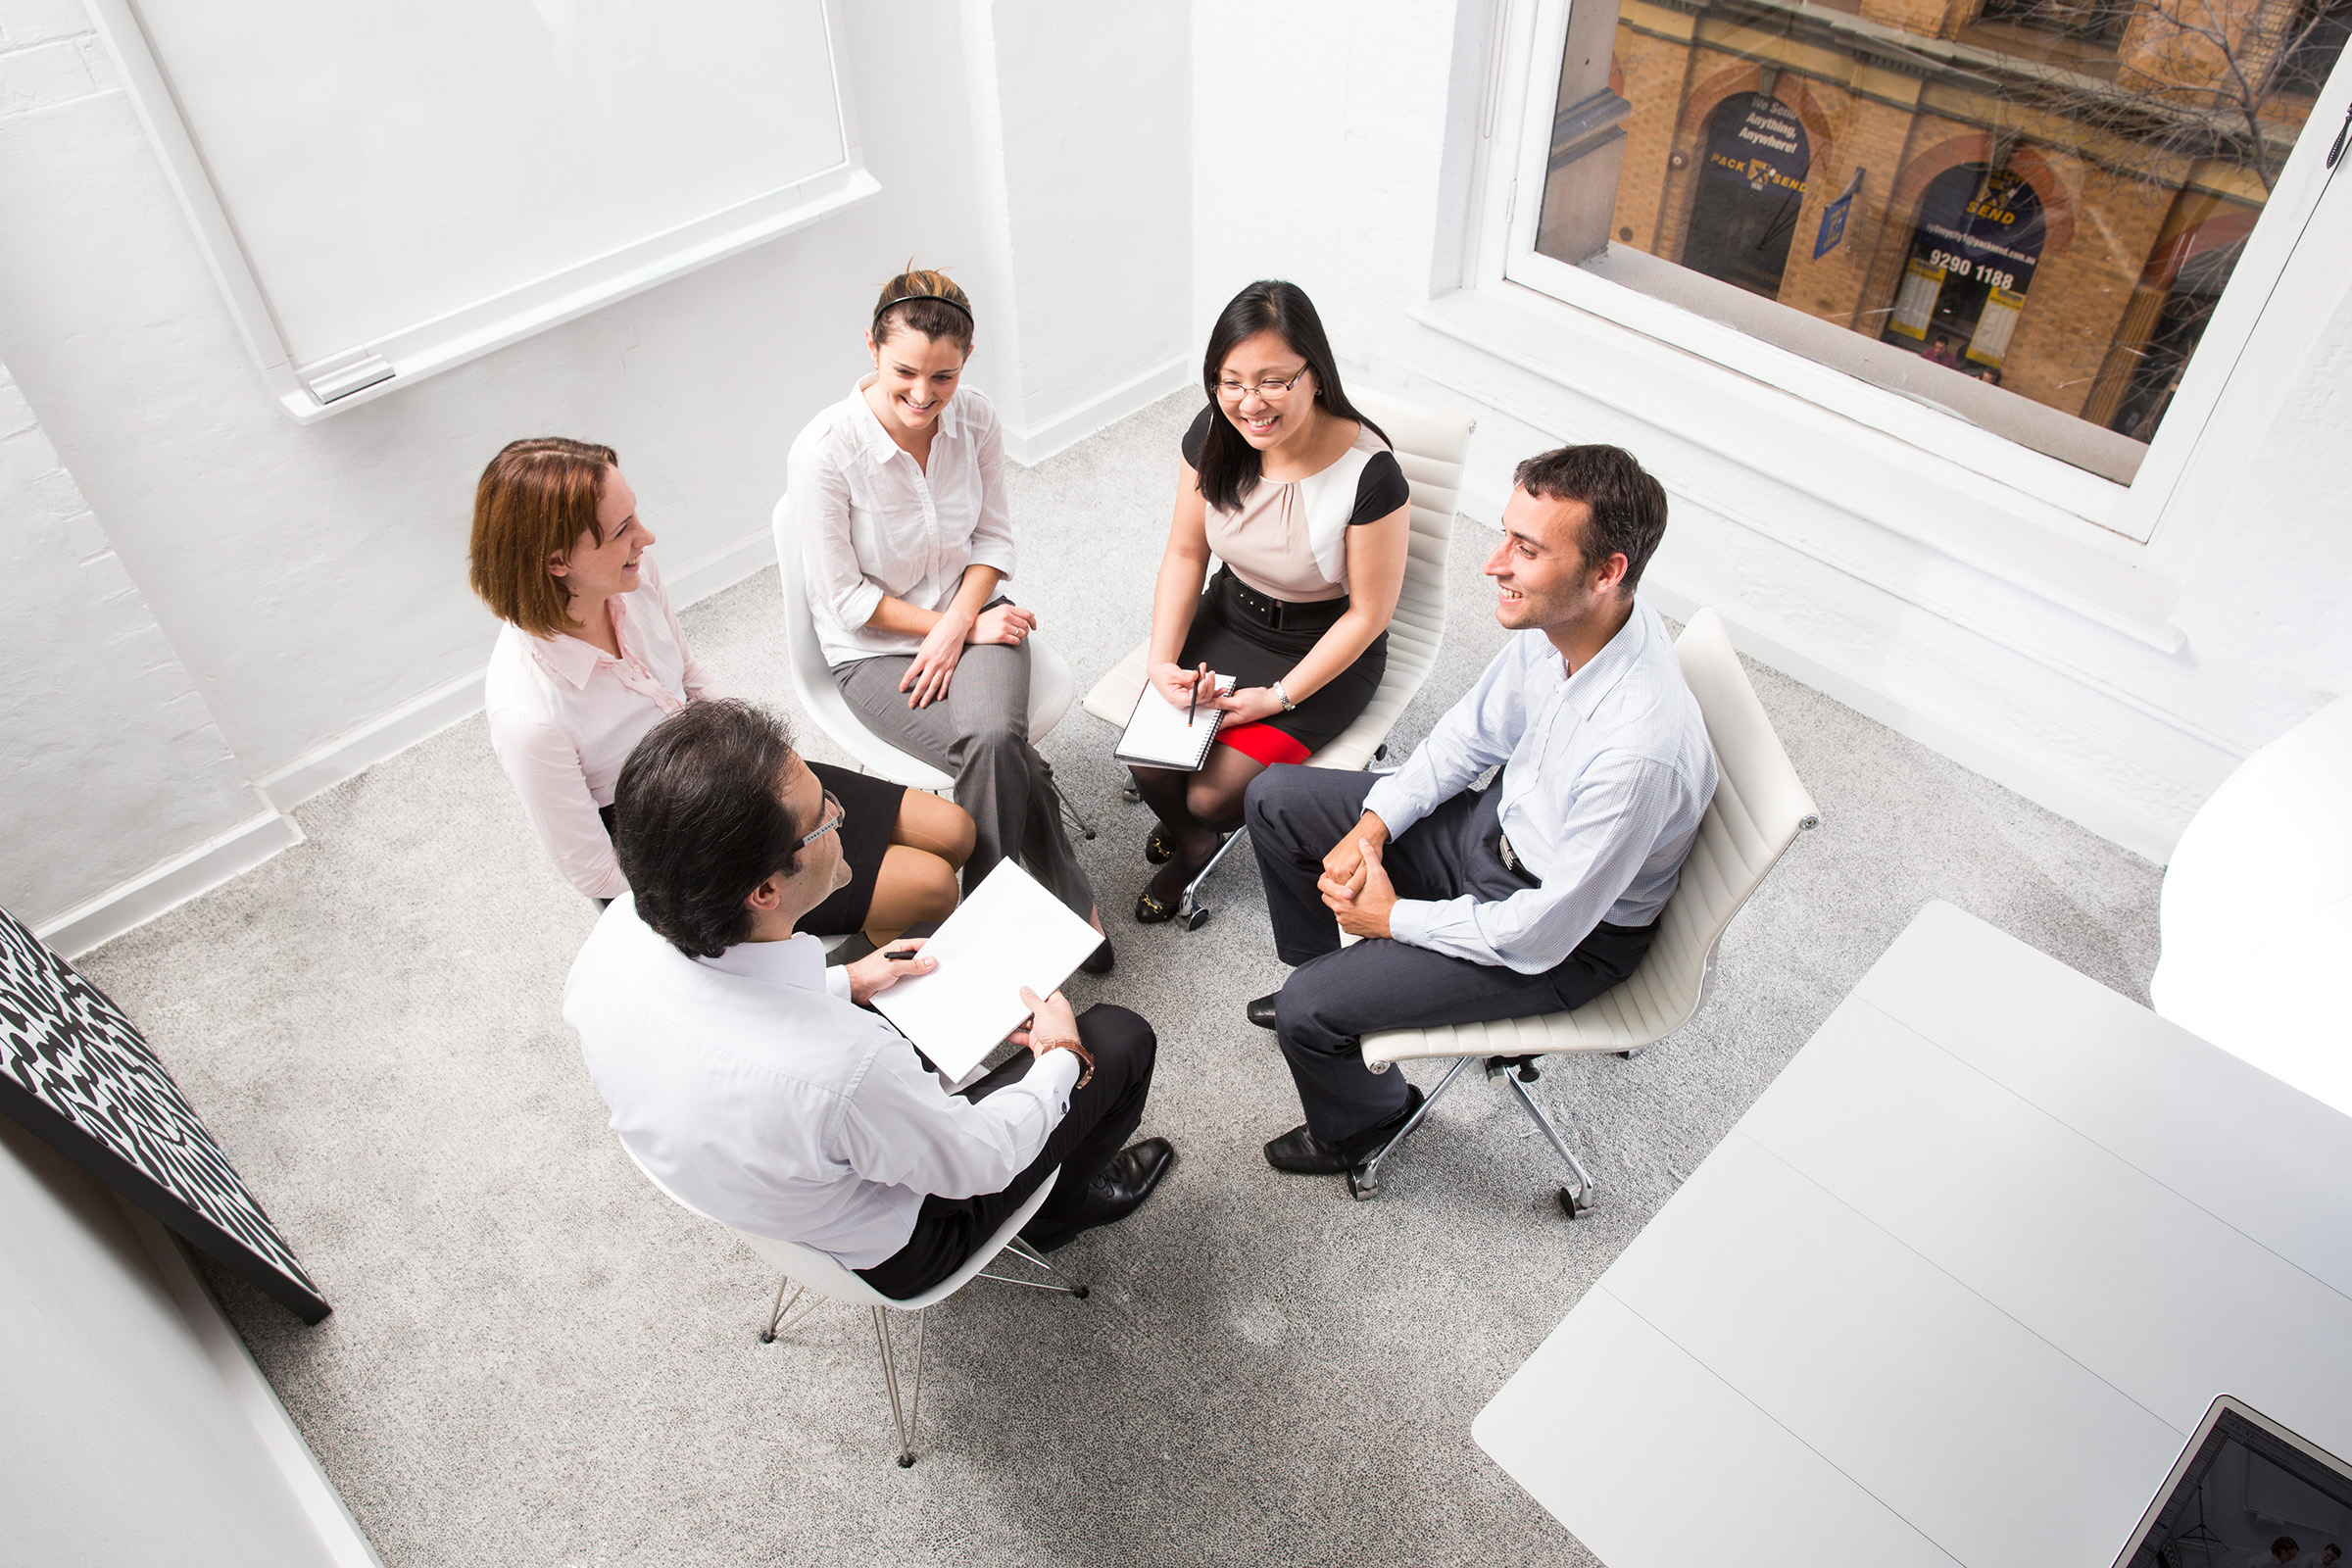 Corporate editorial location photography three woman two men seated in office have a conversation on white chairs